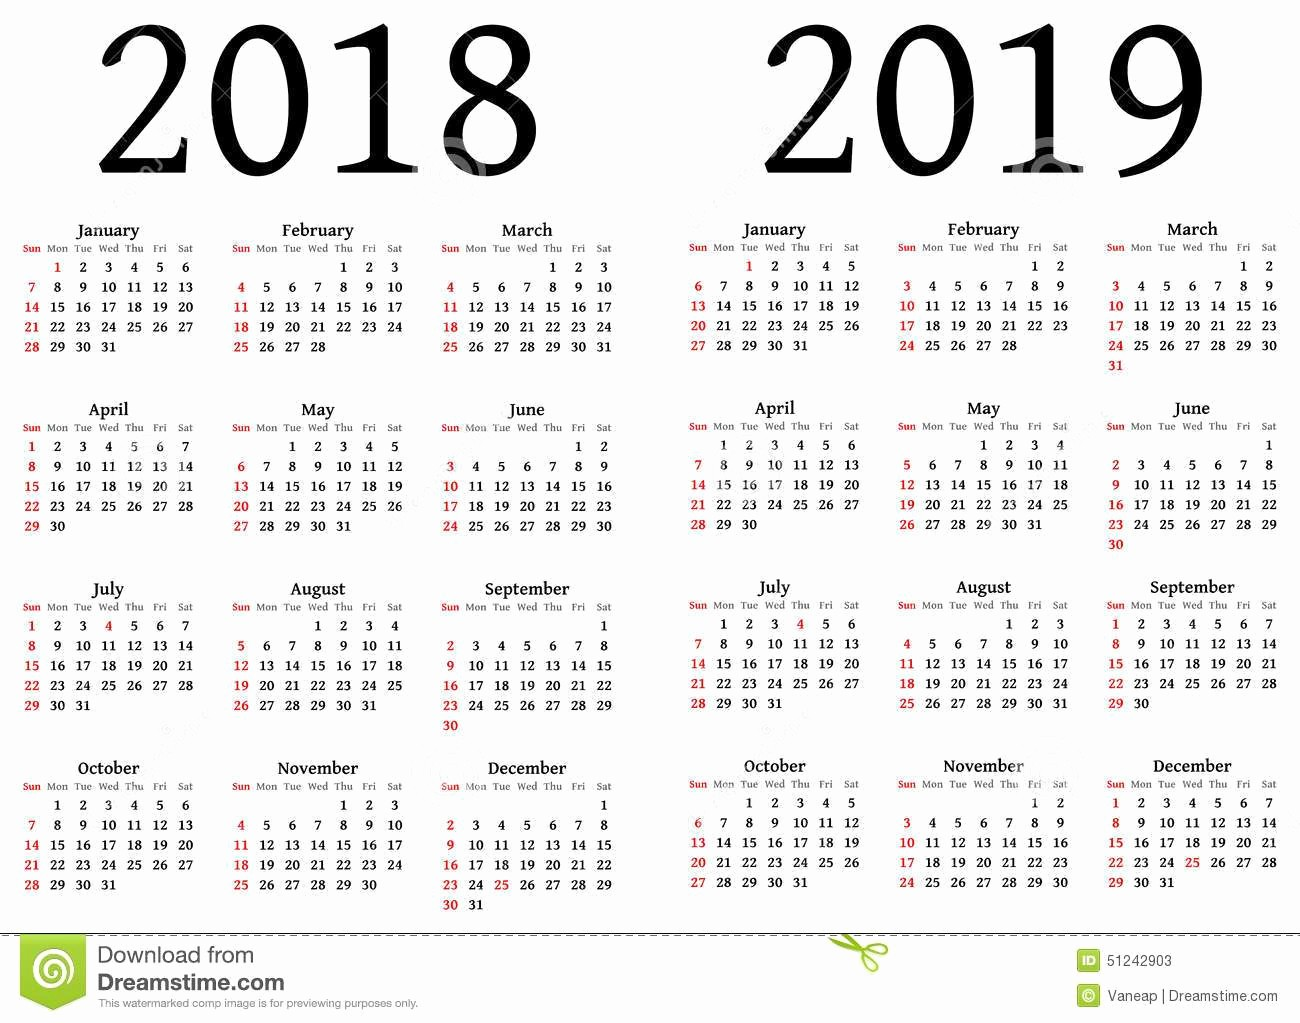 2018 Calendar with Julian Dates Awesome Julian Calendar 2018